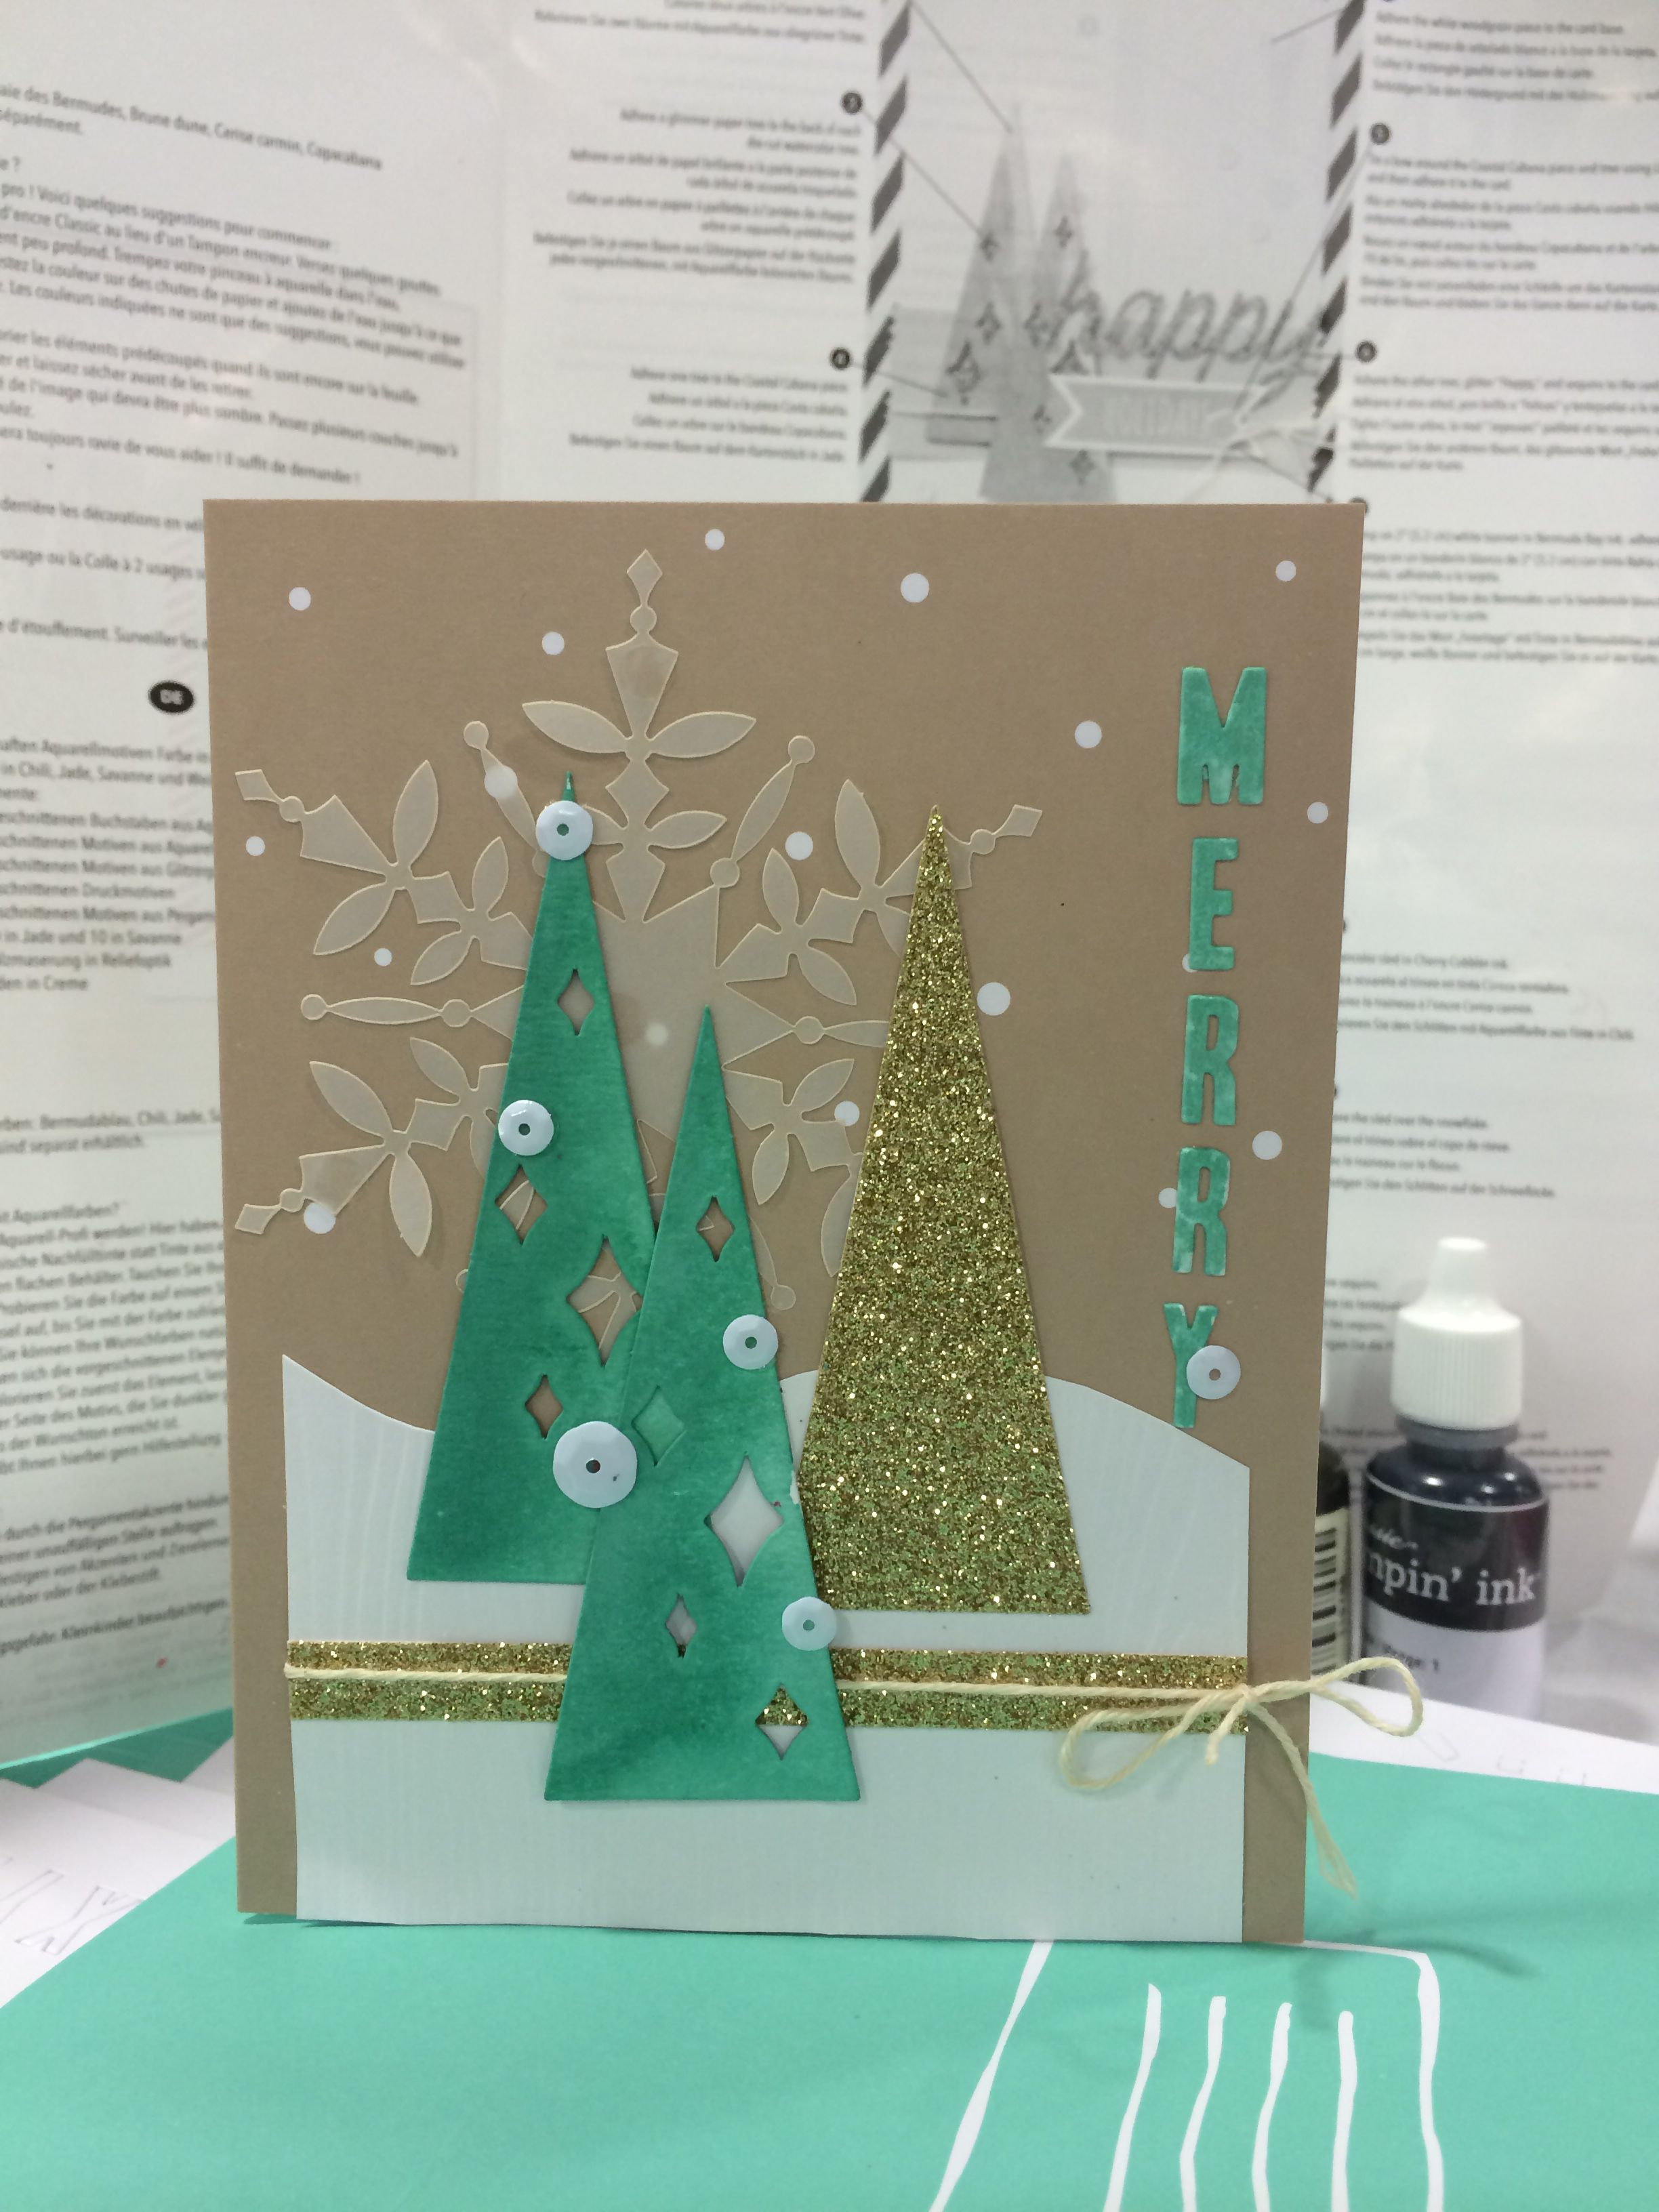 Stampin' Up! demonstrator Audrie M's project showing a fun alternate use for the Watercolor Winter Simply Created Card Kit.